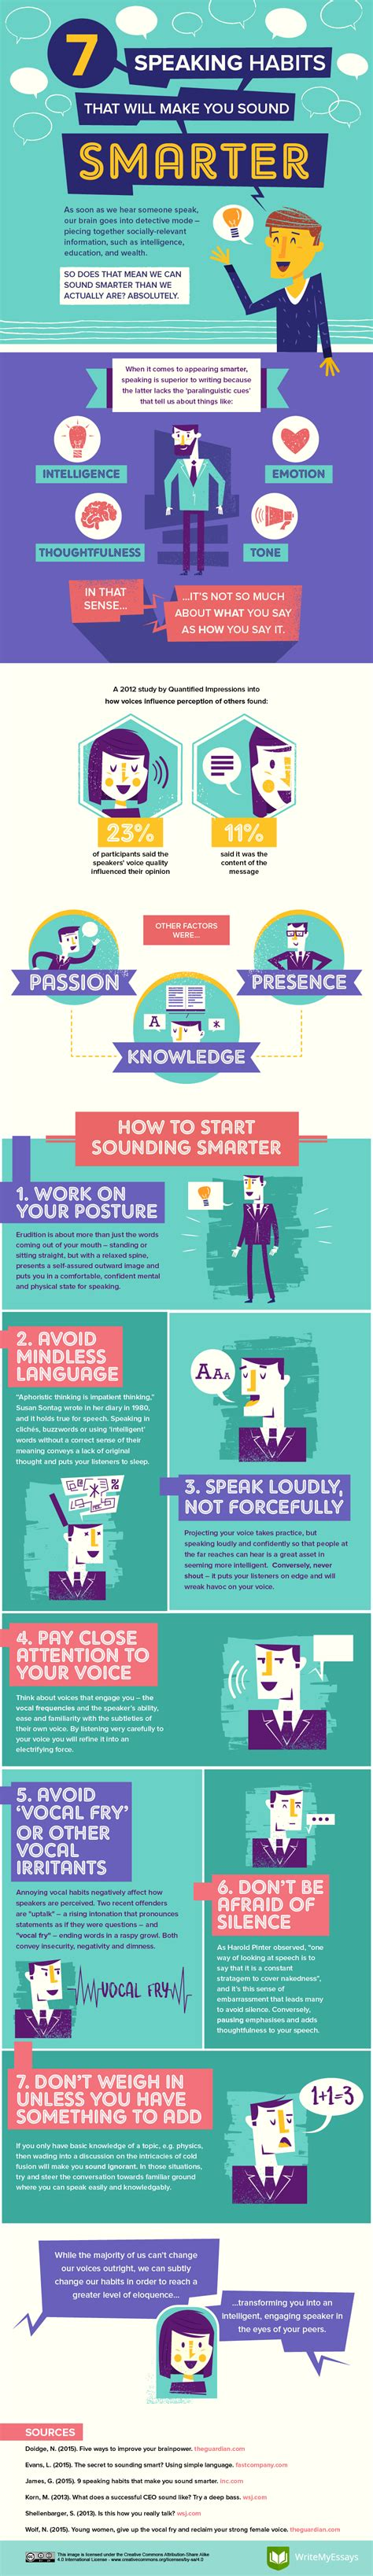 Infographic 24 Daily Habits That Will Make You Smarter Designtaxi 7 Speaking Habits To Make You Sound Smarter Daily Infographic